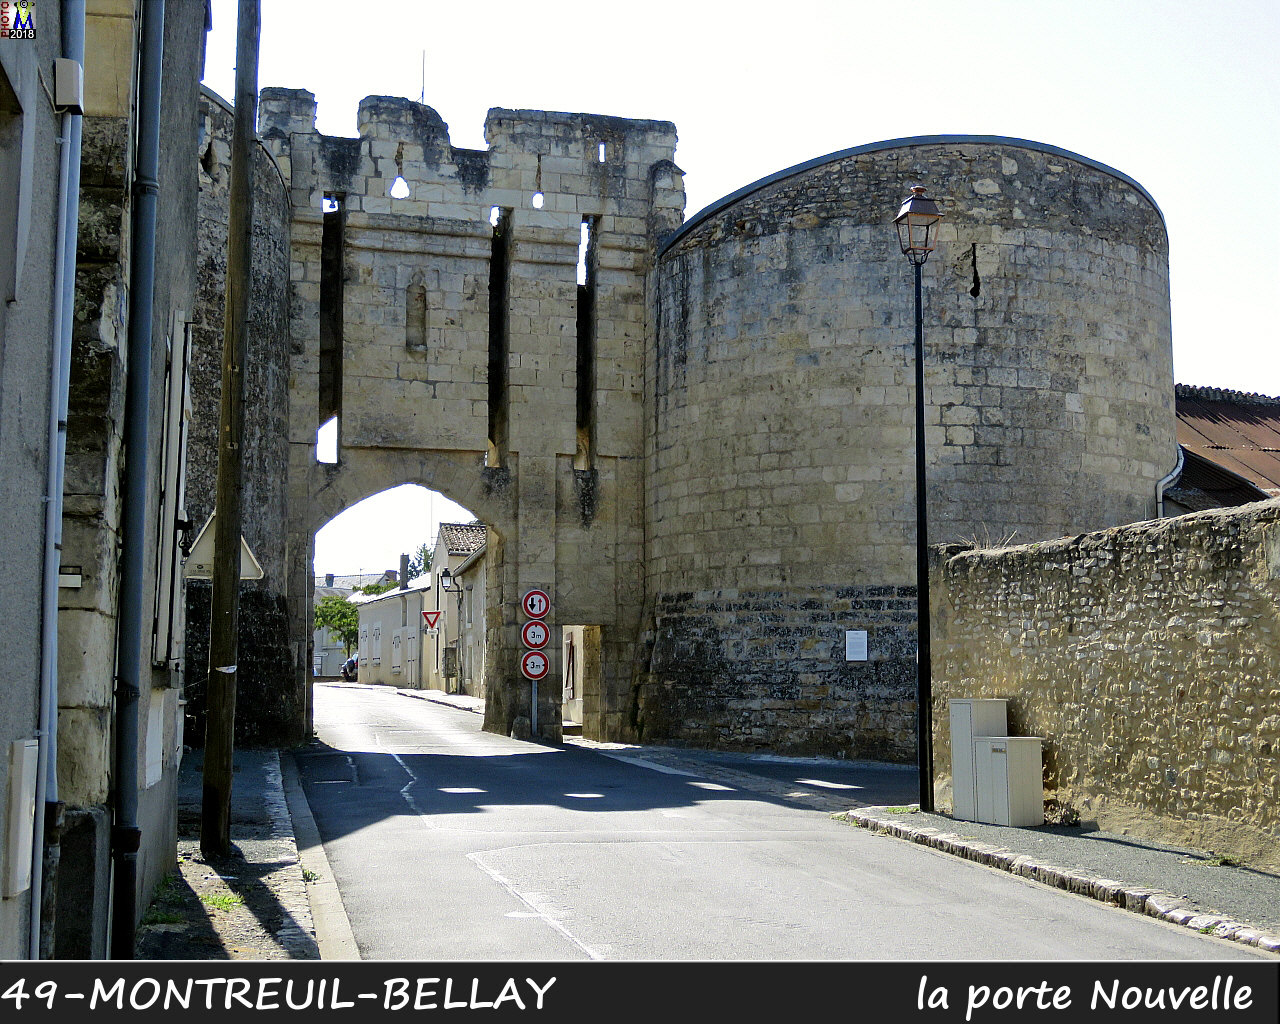 49MONTREUIL-BELLAY_porteNouvelle_1002.jpg